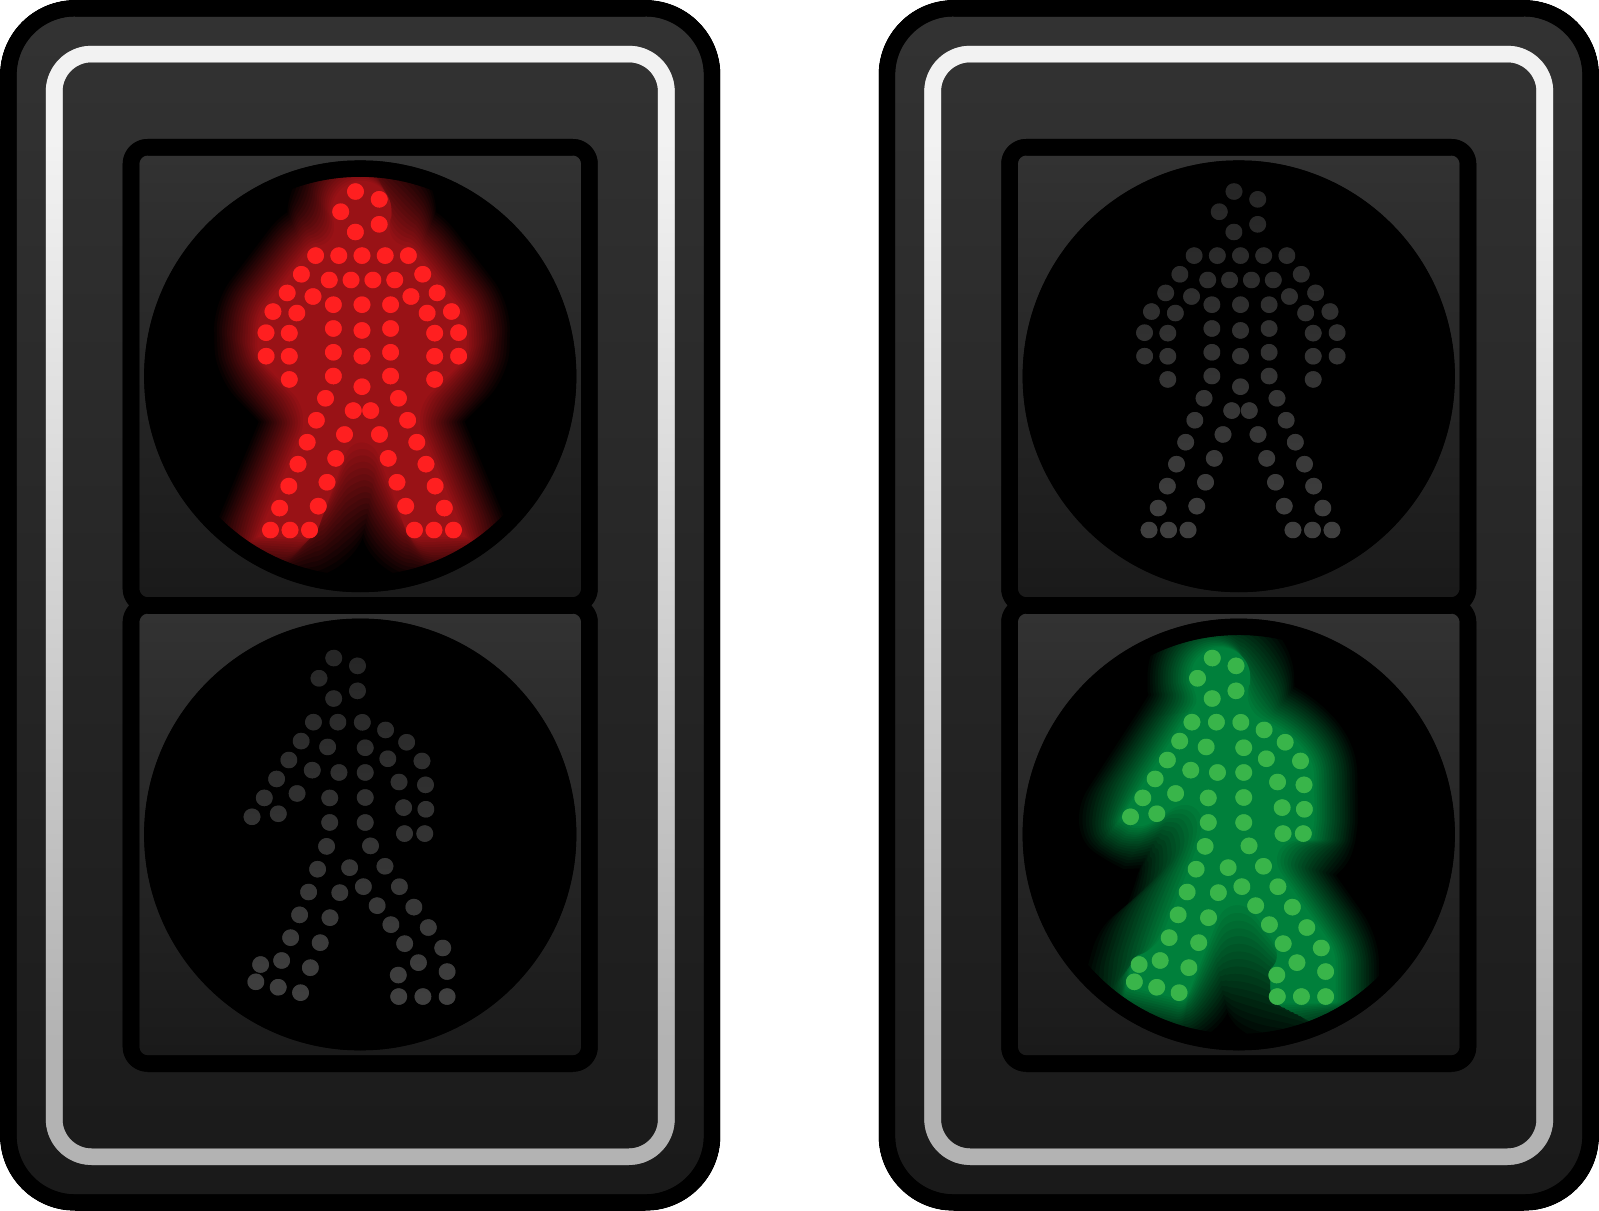 How Much Time Does The Quot Green Man Quot On The Traffic Light